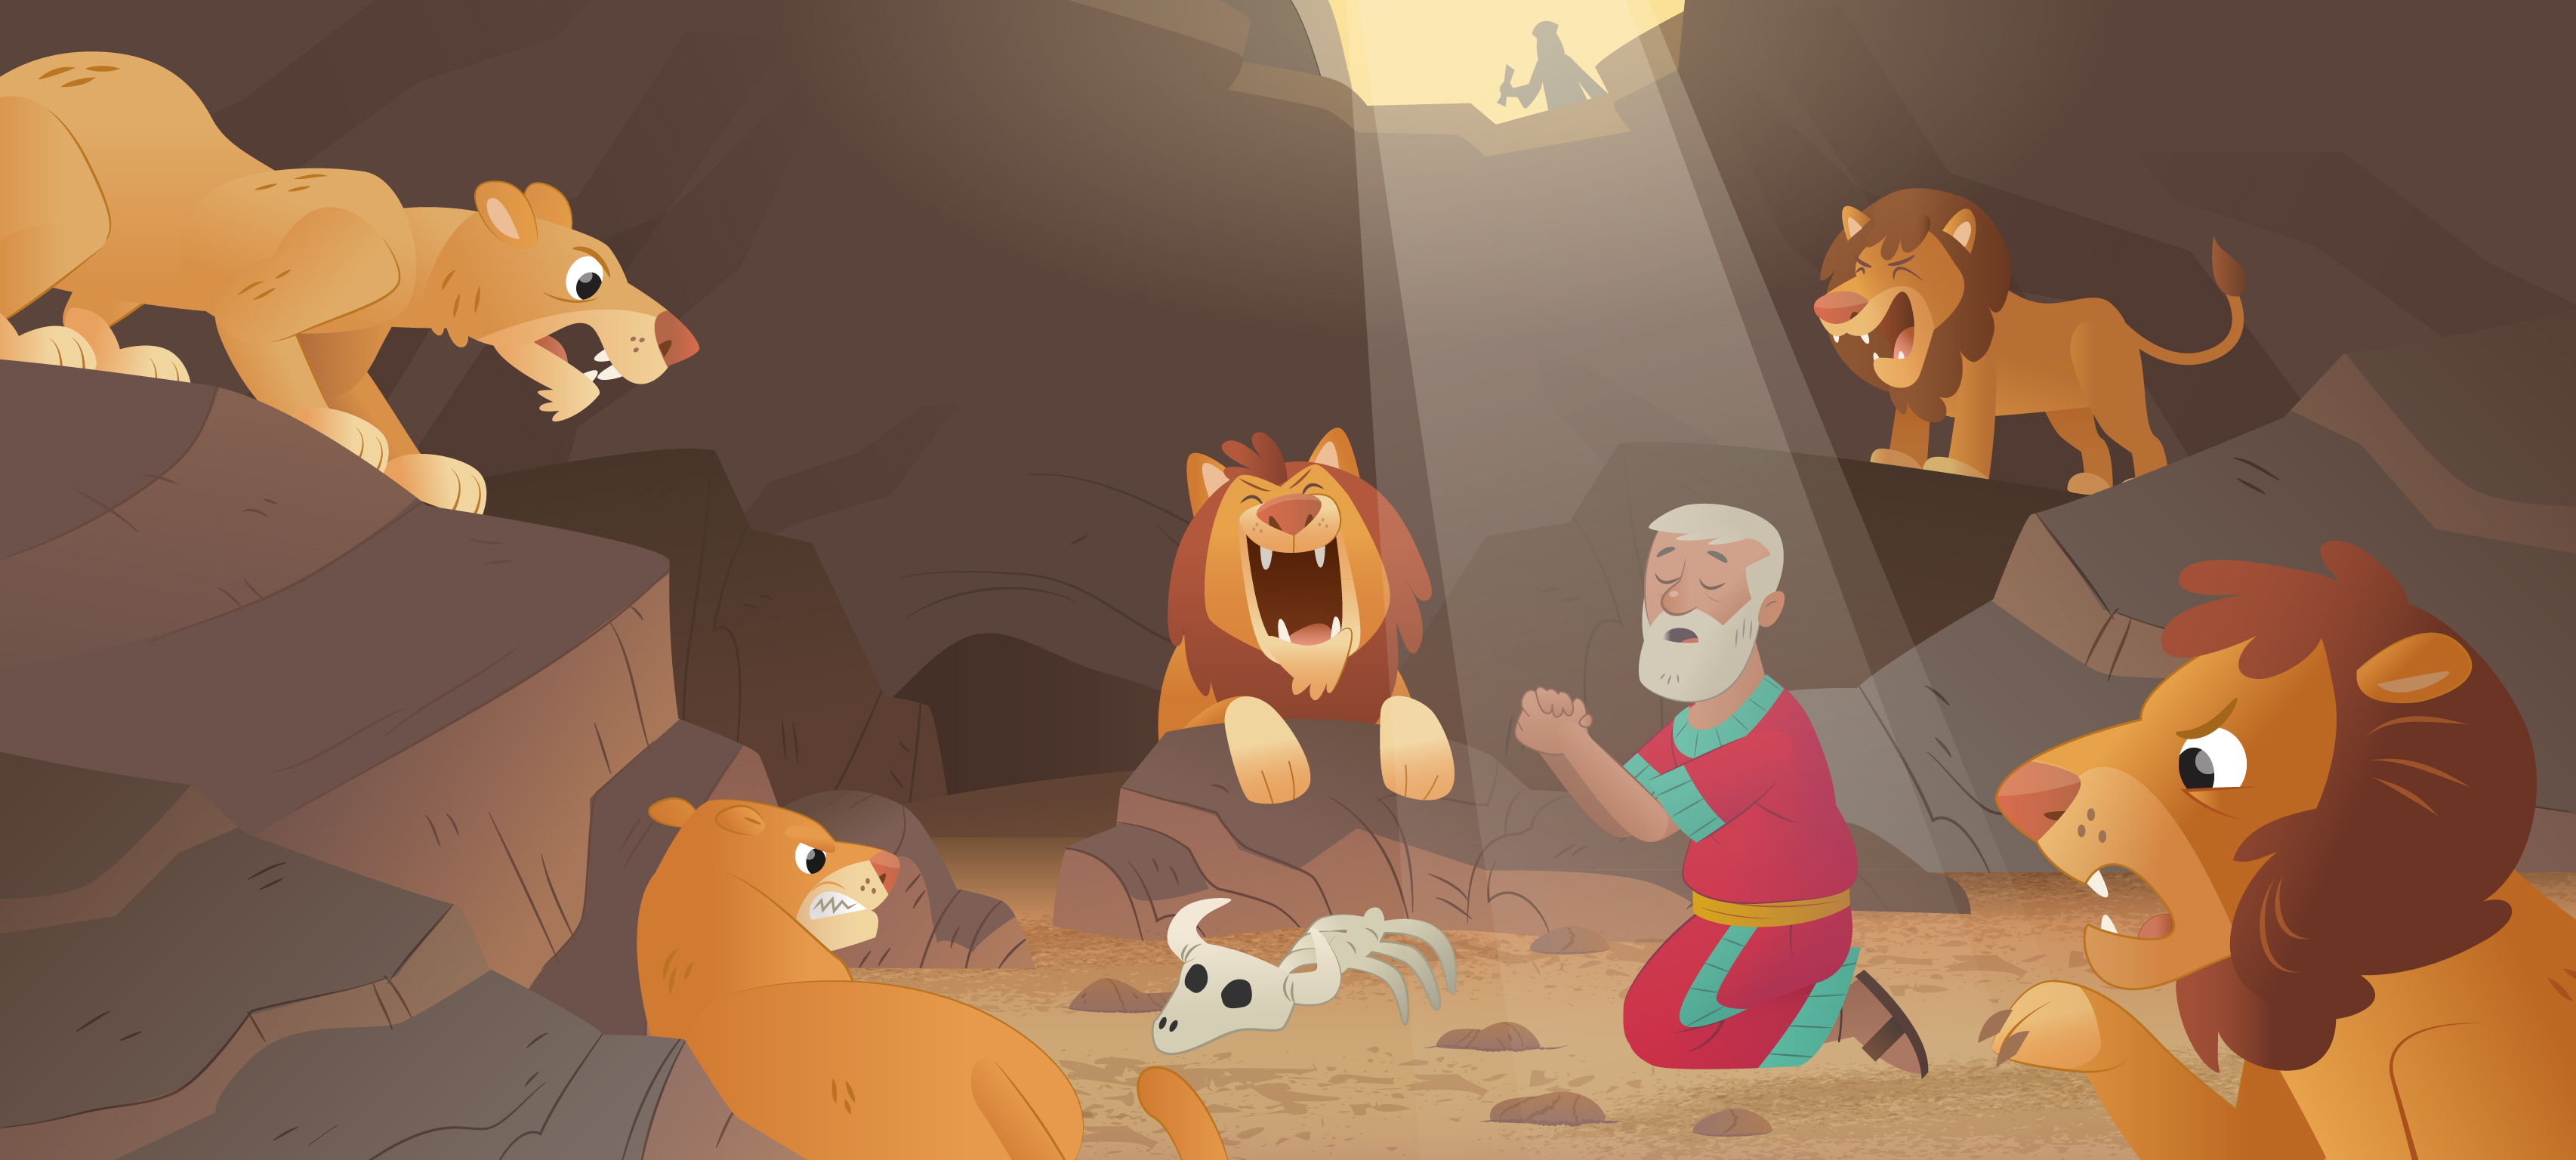 new bible app for kids story daniel in the lions u0027 den u201ca roaring